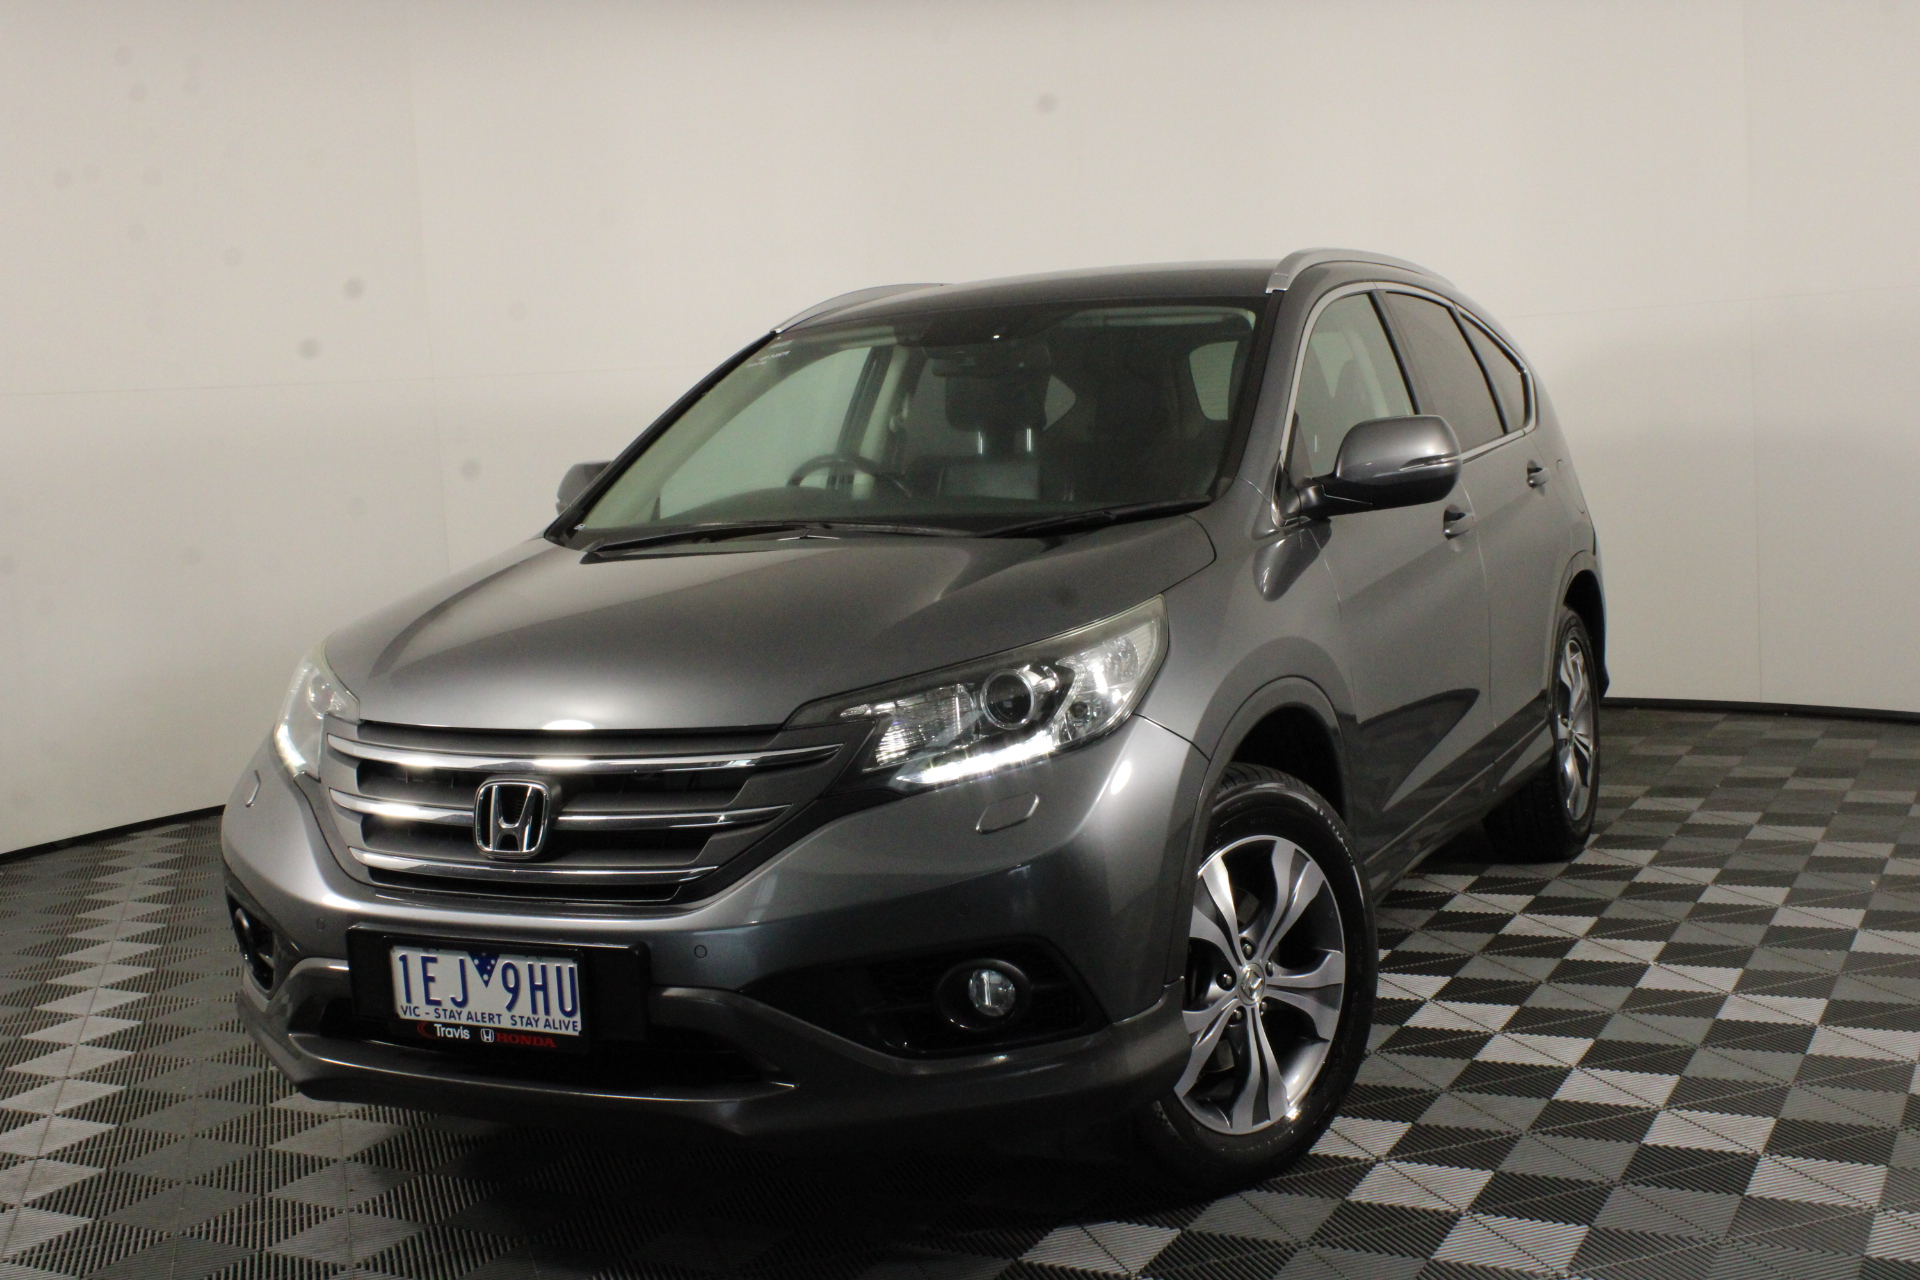 2015 Honda CR-V 4WD DTi-L RM Turbo Diesel Automatic Wagon